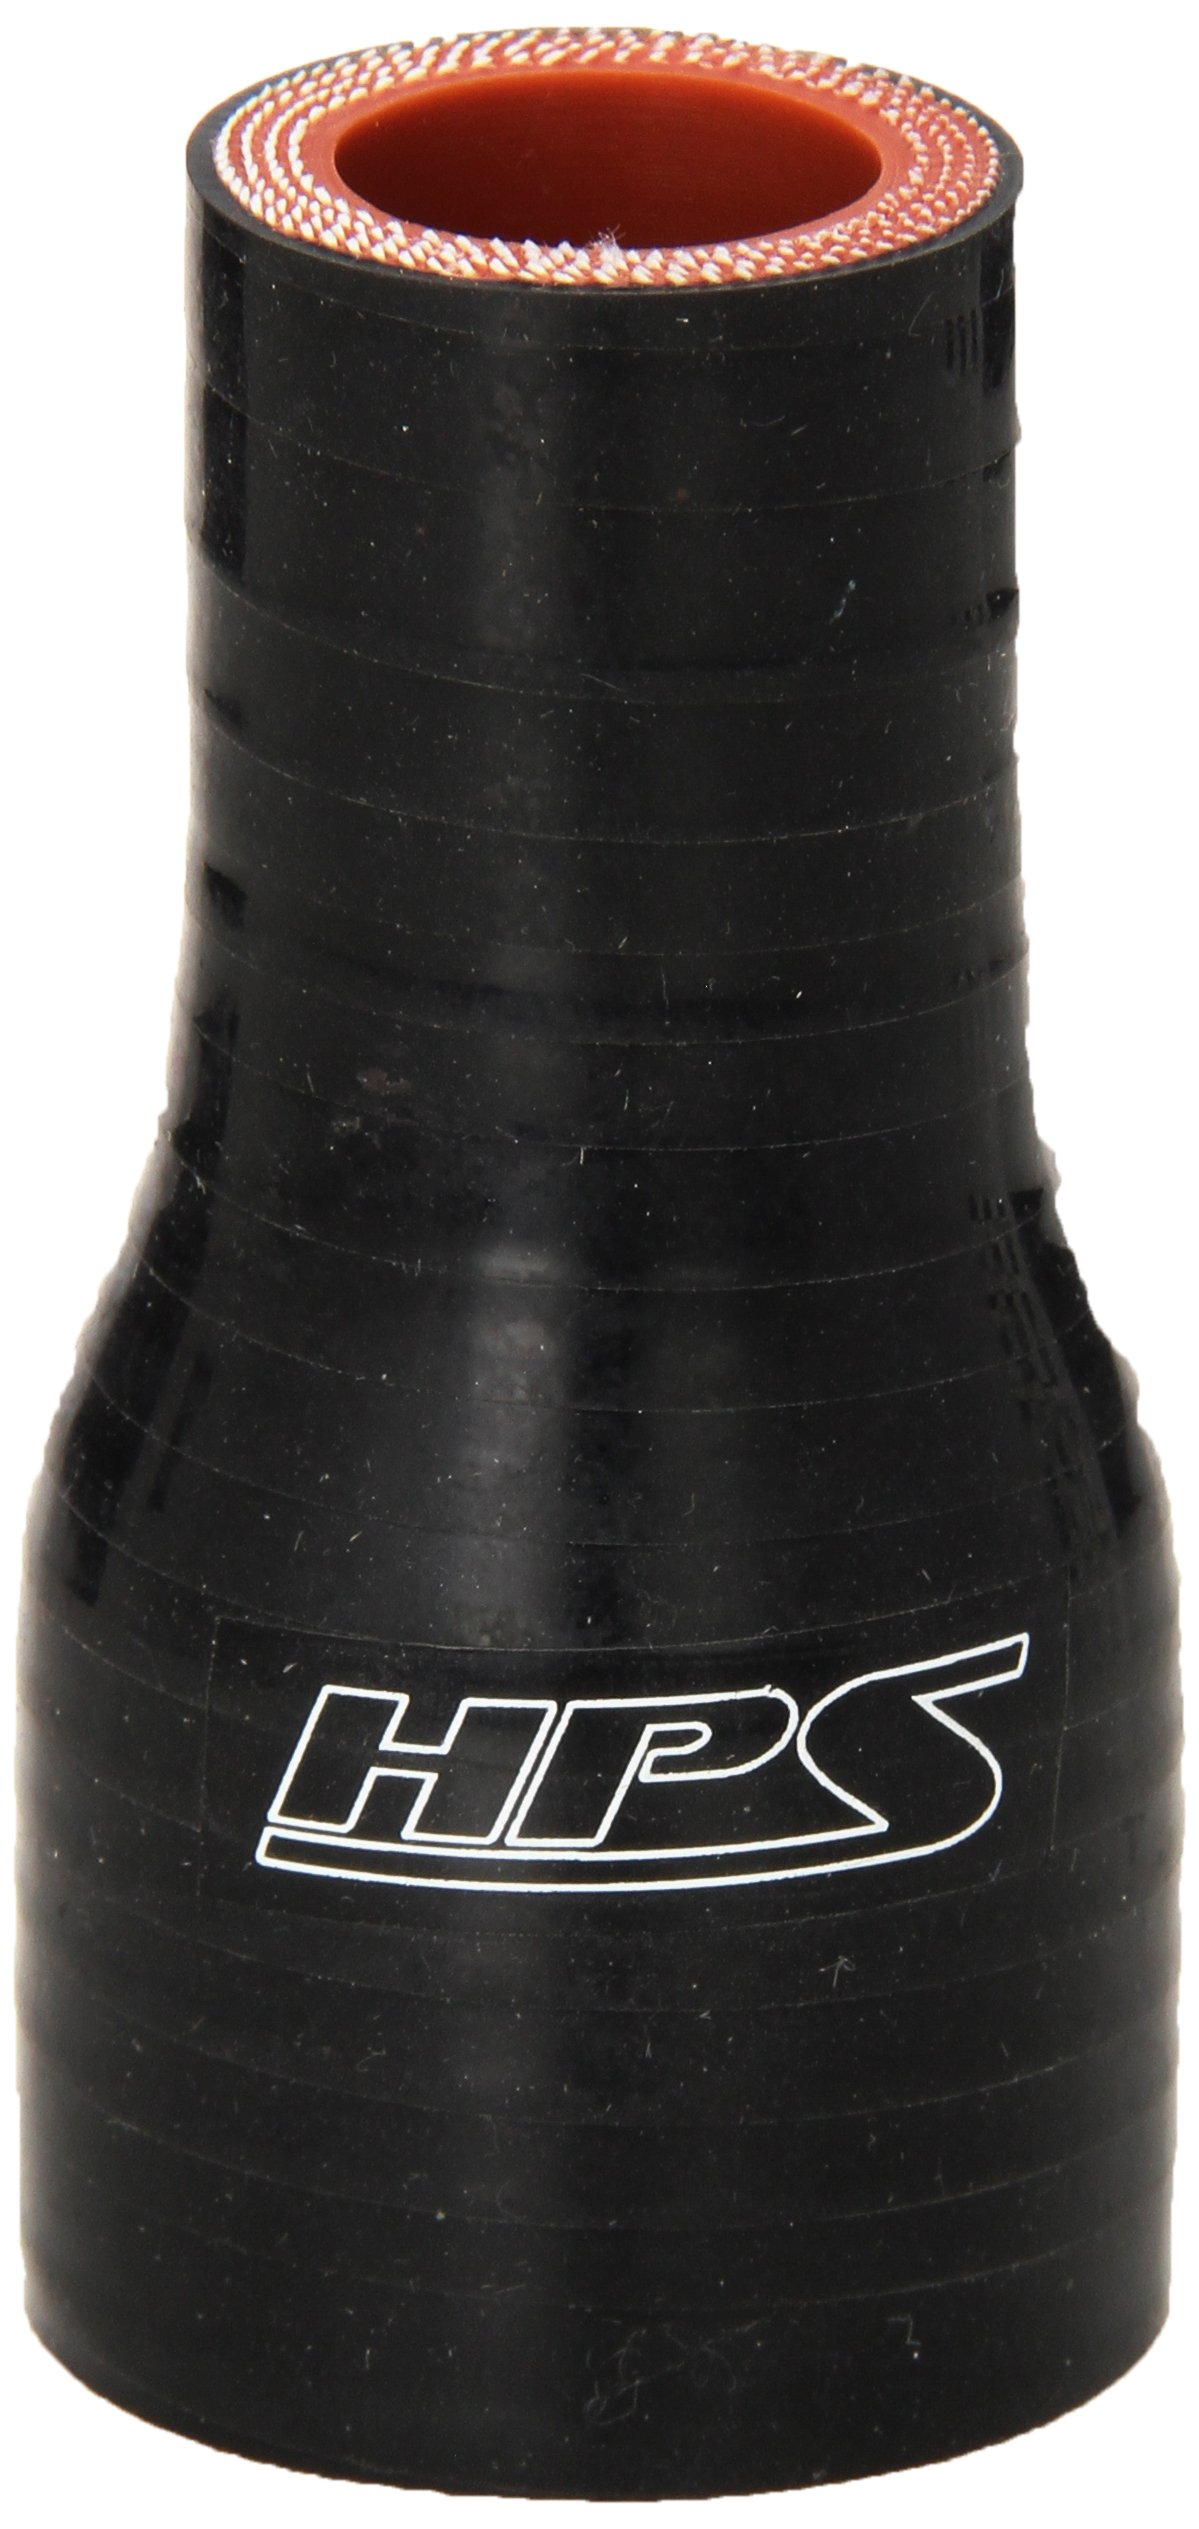 3 Length 1-1//4  1-3//4 ID 100 PSI Maximum Pressure Black 3 Length 1-1//4  1-3//4 ID HPS Silicone Hoses HPS HTSR-125-175-BLK Silicone High Temperature 4-ply Reinforced Reducer Coupler Hose